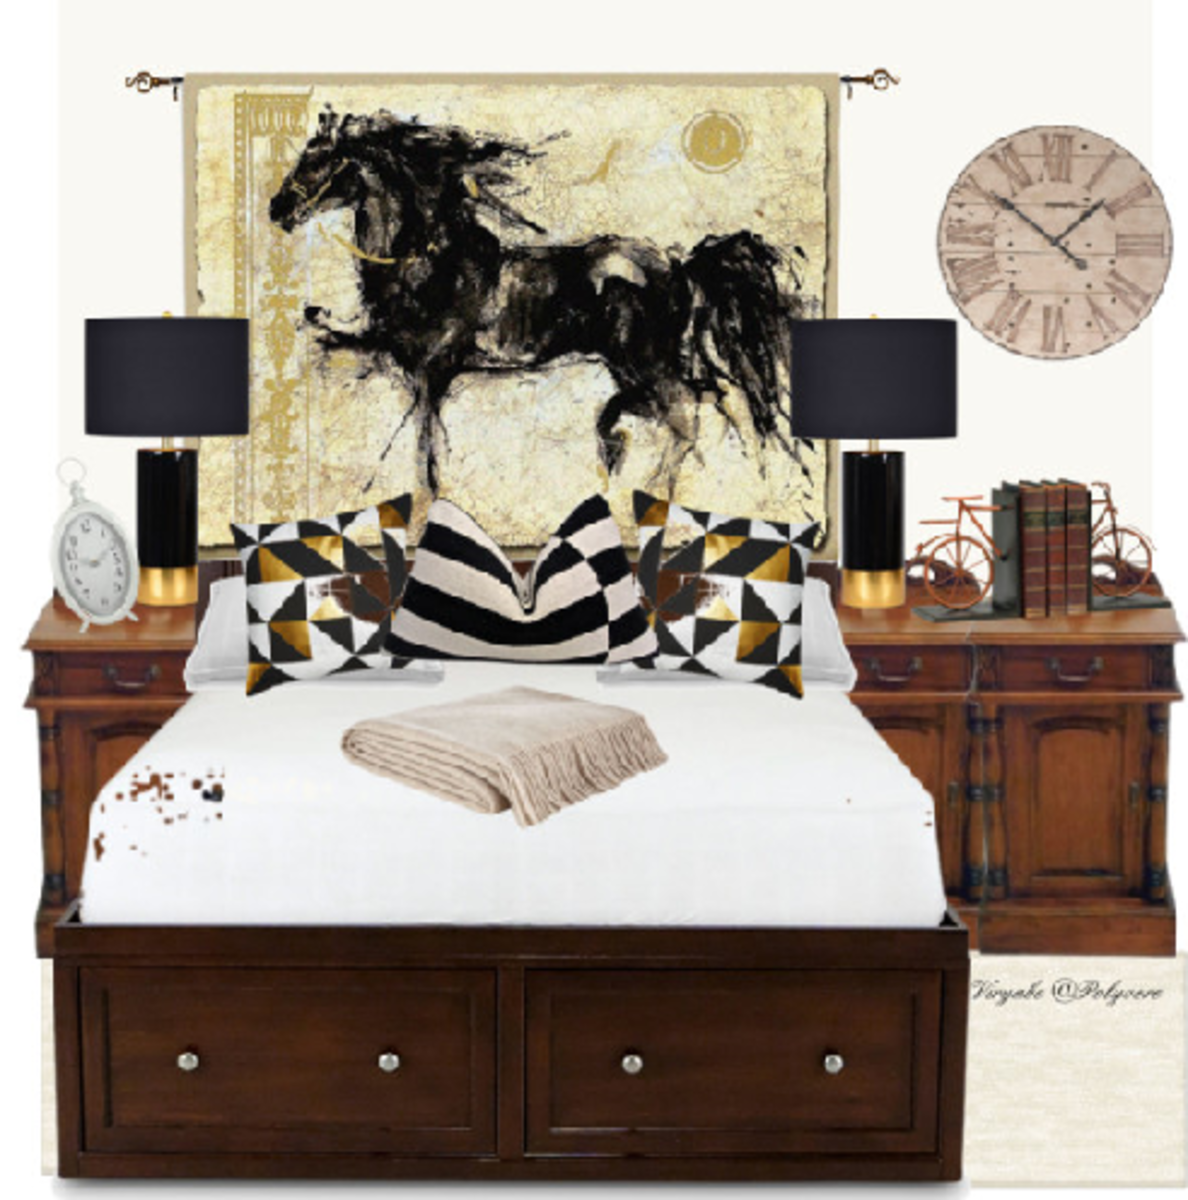 A creative way to hang a standalone tapestry art, making it serve not only as a piece of decoration, but also as a faux-headboard. A one-piece wall art must have at least one of its stronger colours repeated in the interior decor of the room.